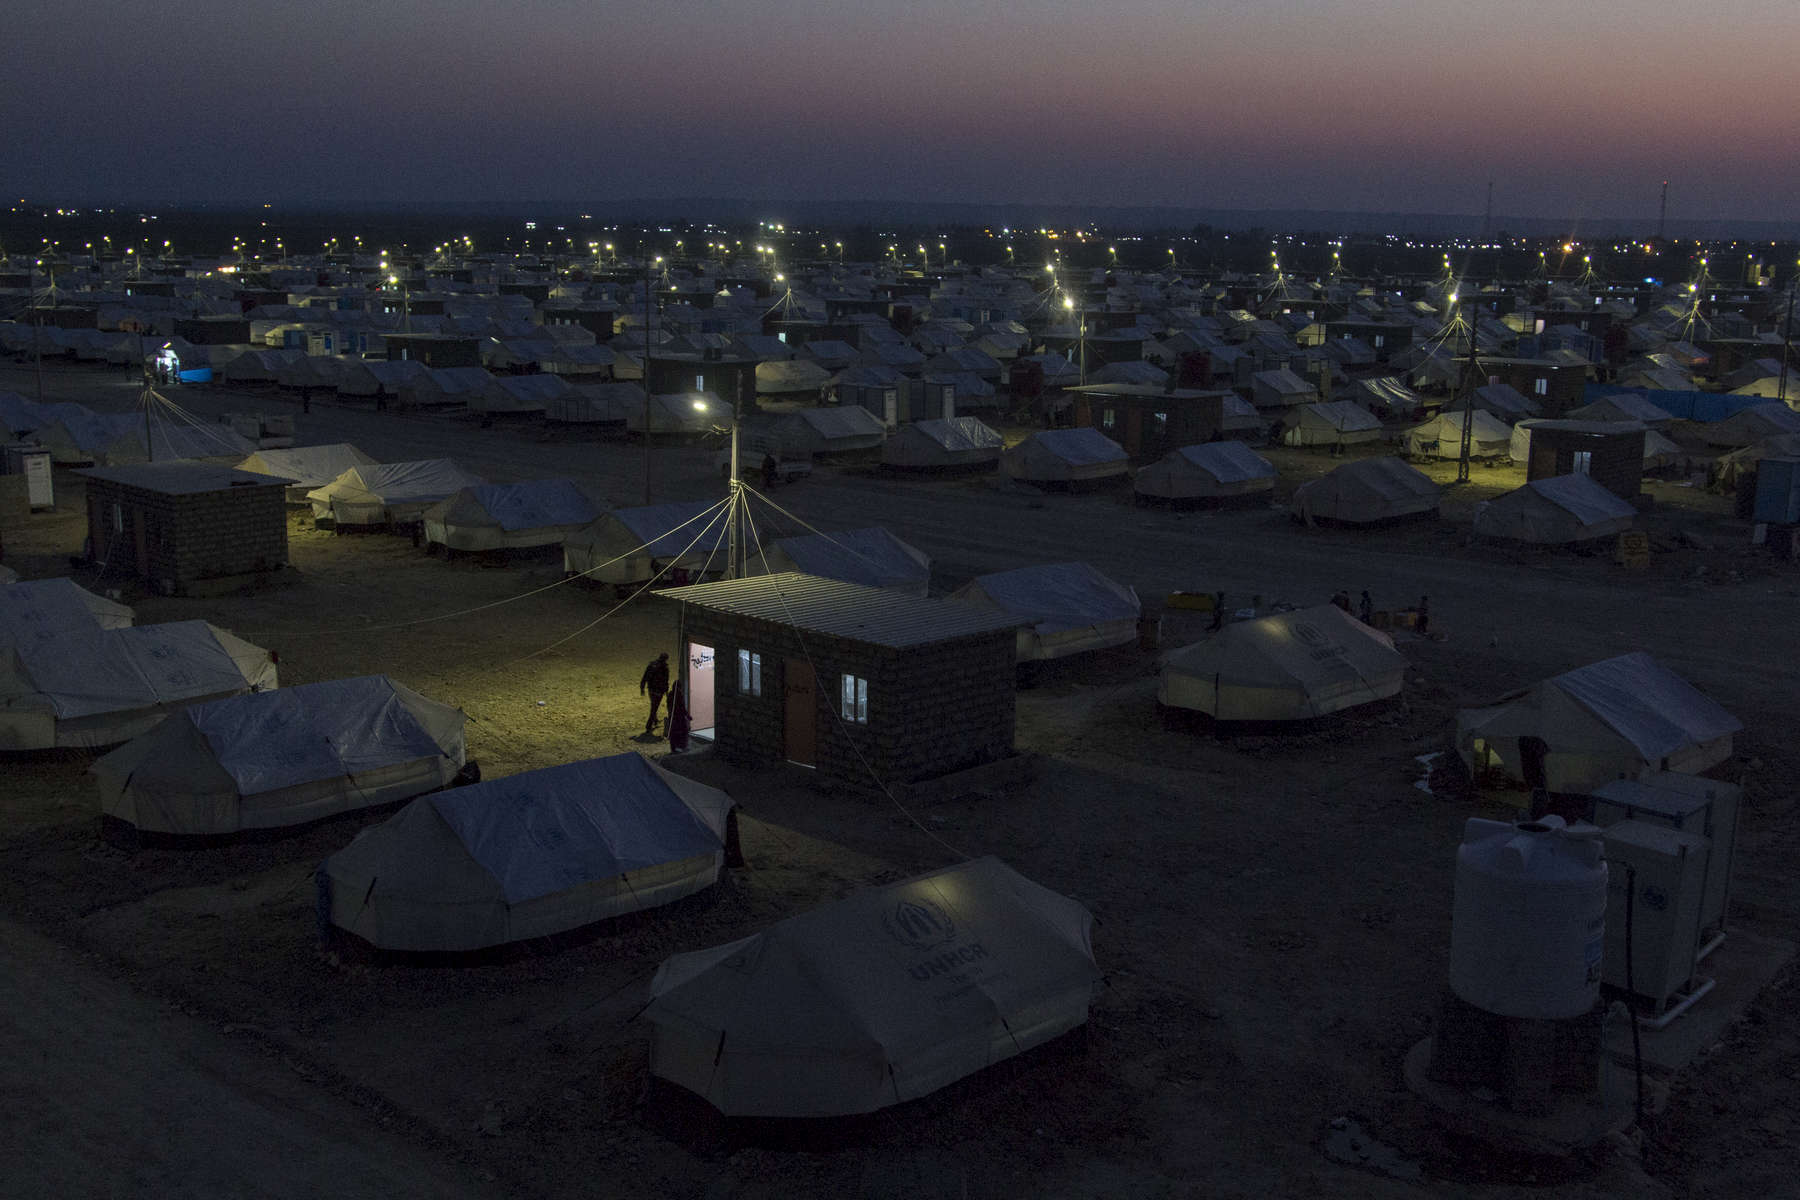 22/01/2015 -- Kirkuk, Iraq -- Laylan camp, located 20 KM south of Kirkuk, was built by UNHCR and the municipality of Kirkuk with around 1500 Tents, approximately 8,500 people live in the camp.